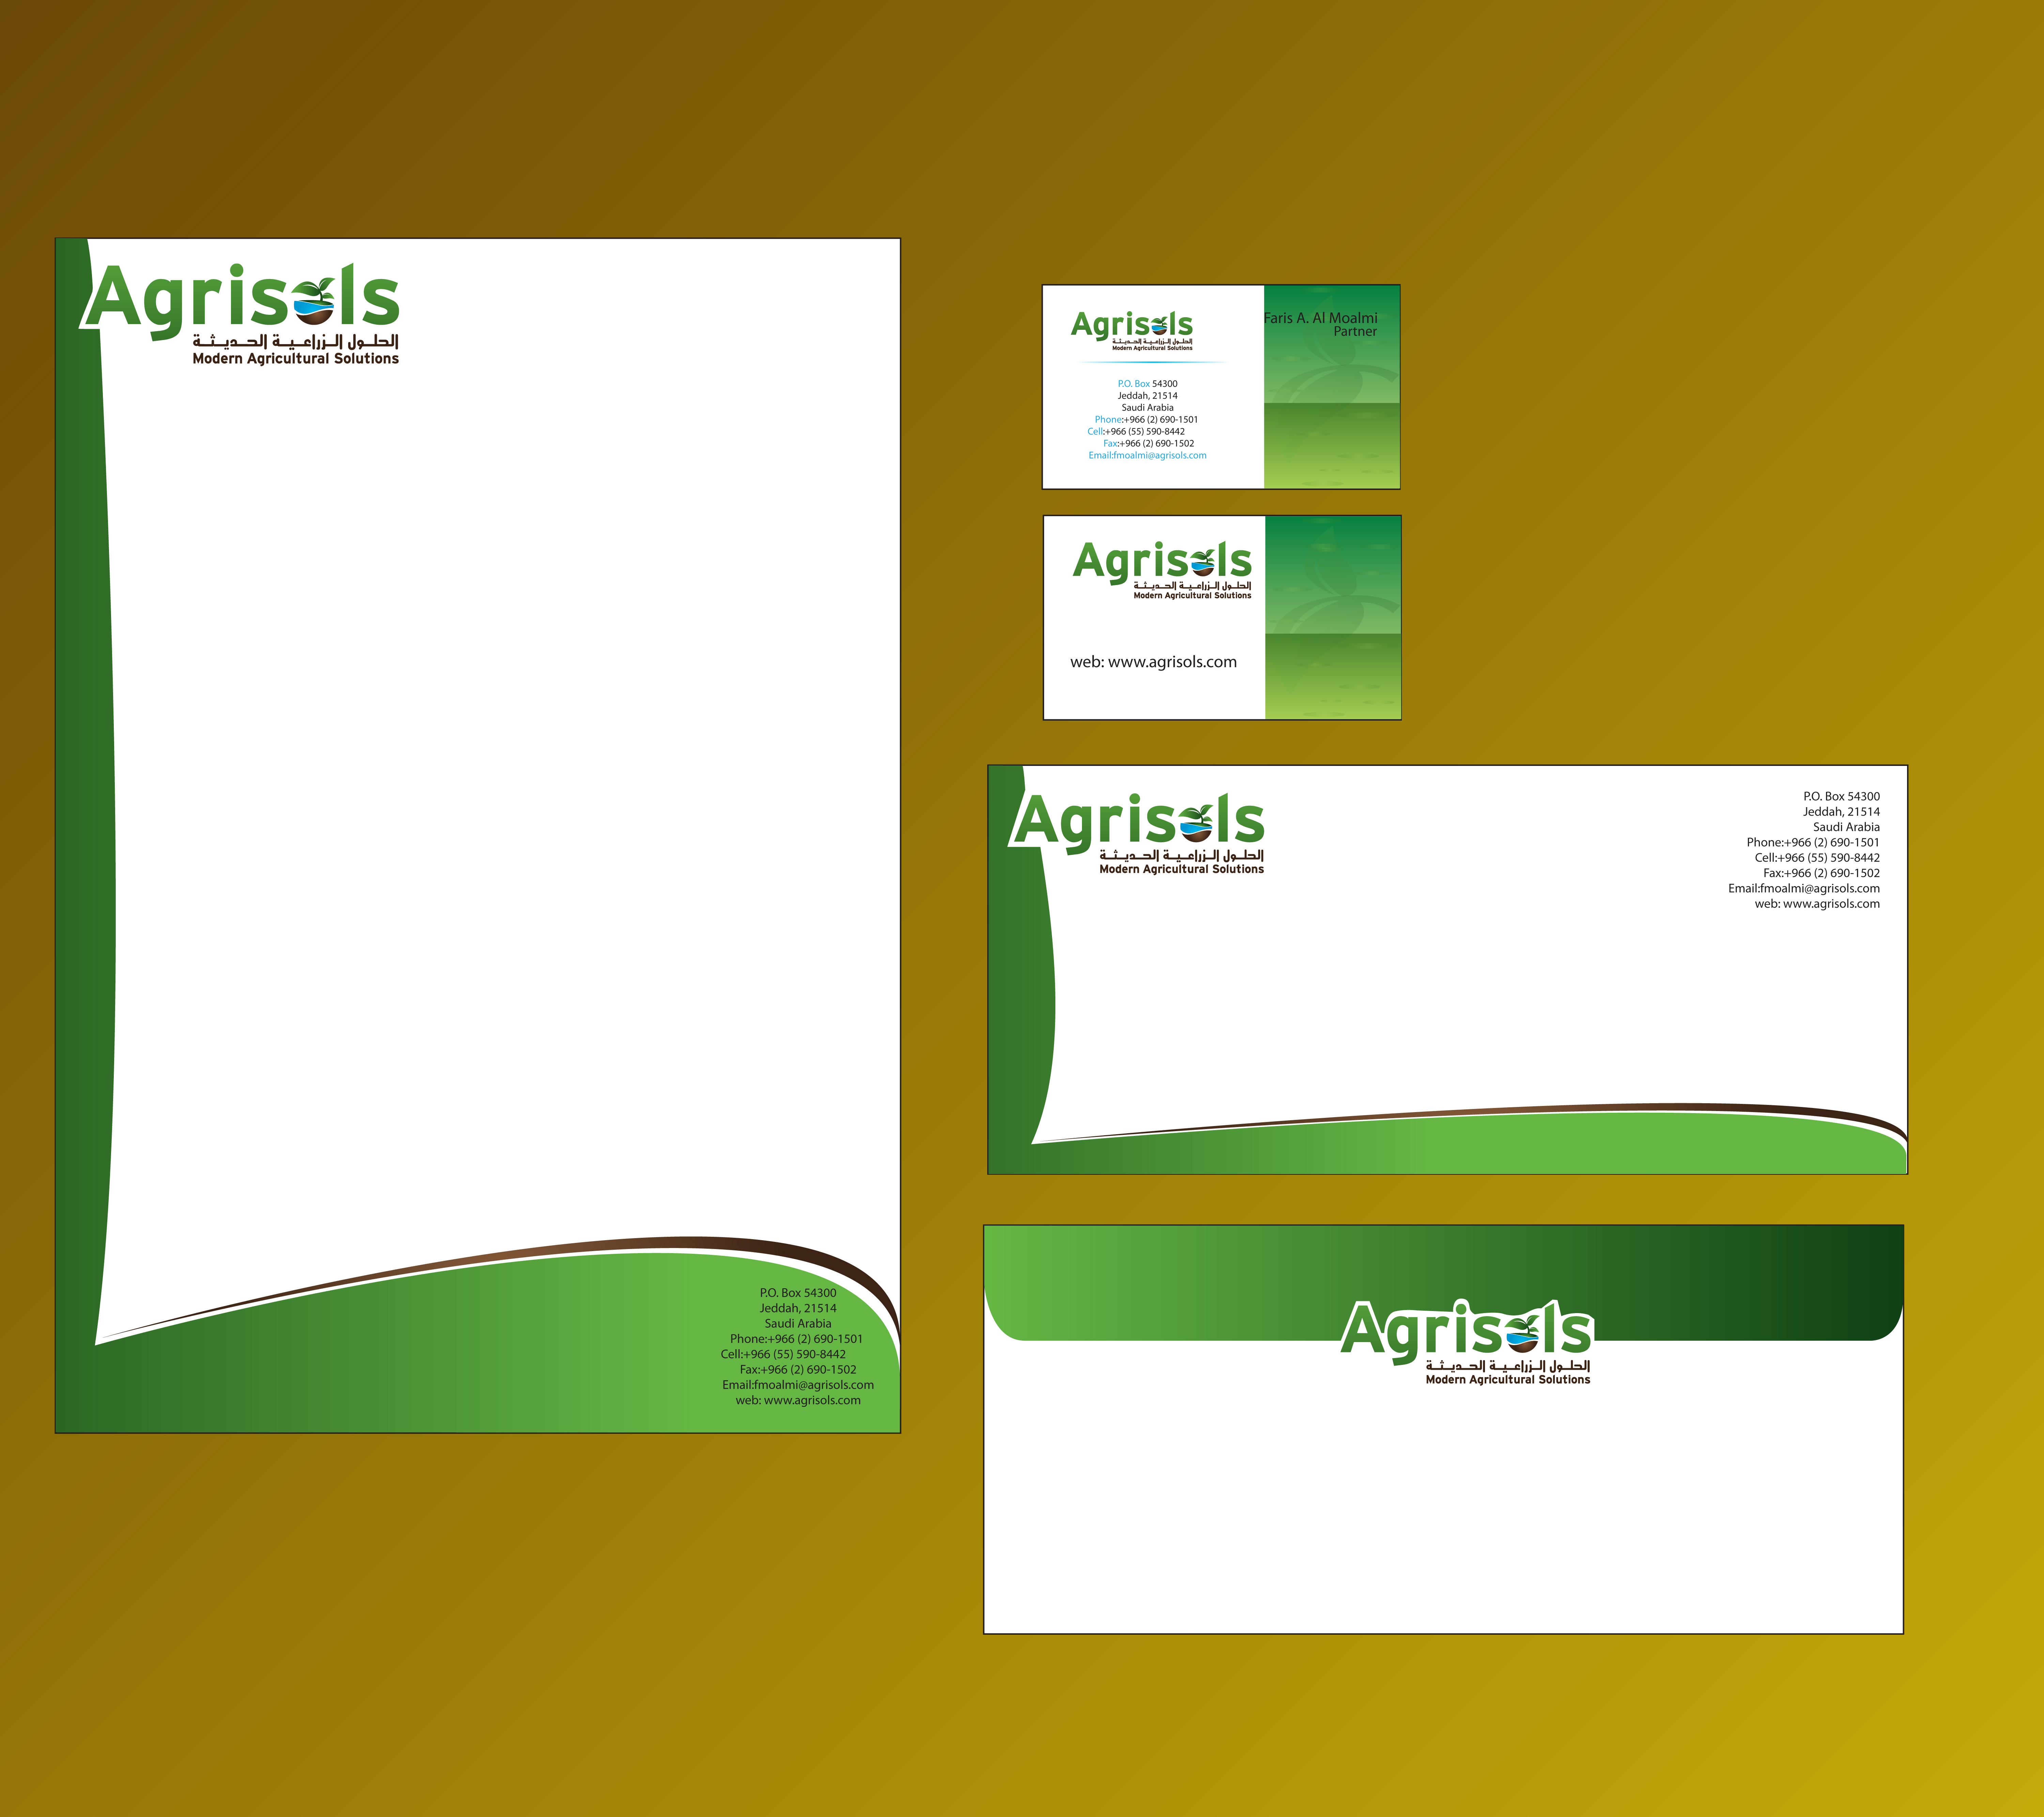 Check out this design for business cards a4 letterhead dl envelope check out this design for business cards a4 letterhead dl envelope c4 envelope c5 envelope ppt template file by mycroburst flashek Choice Image